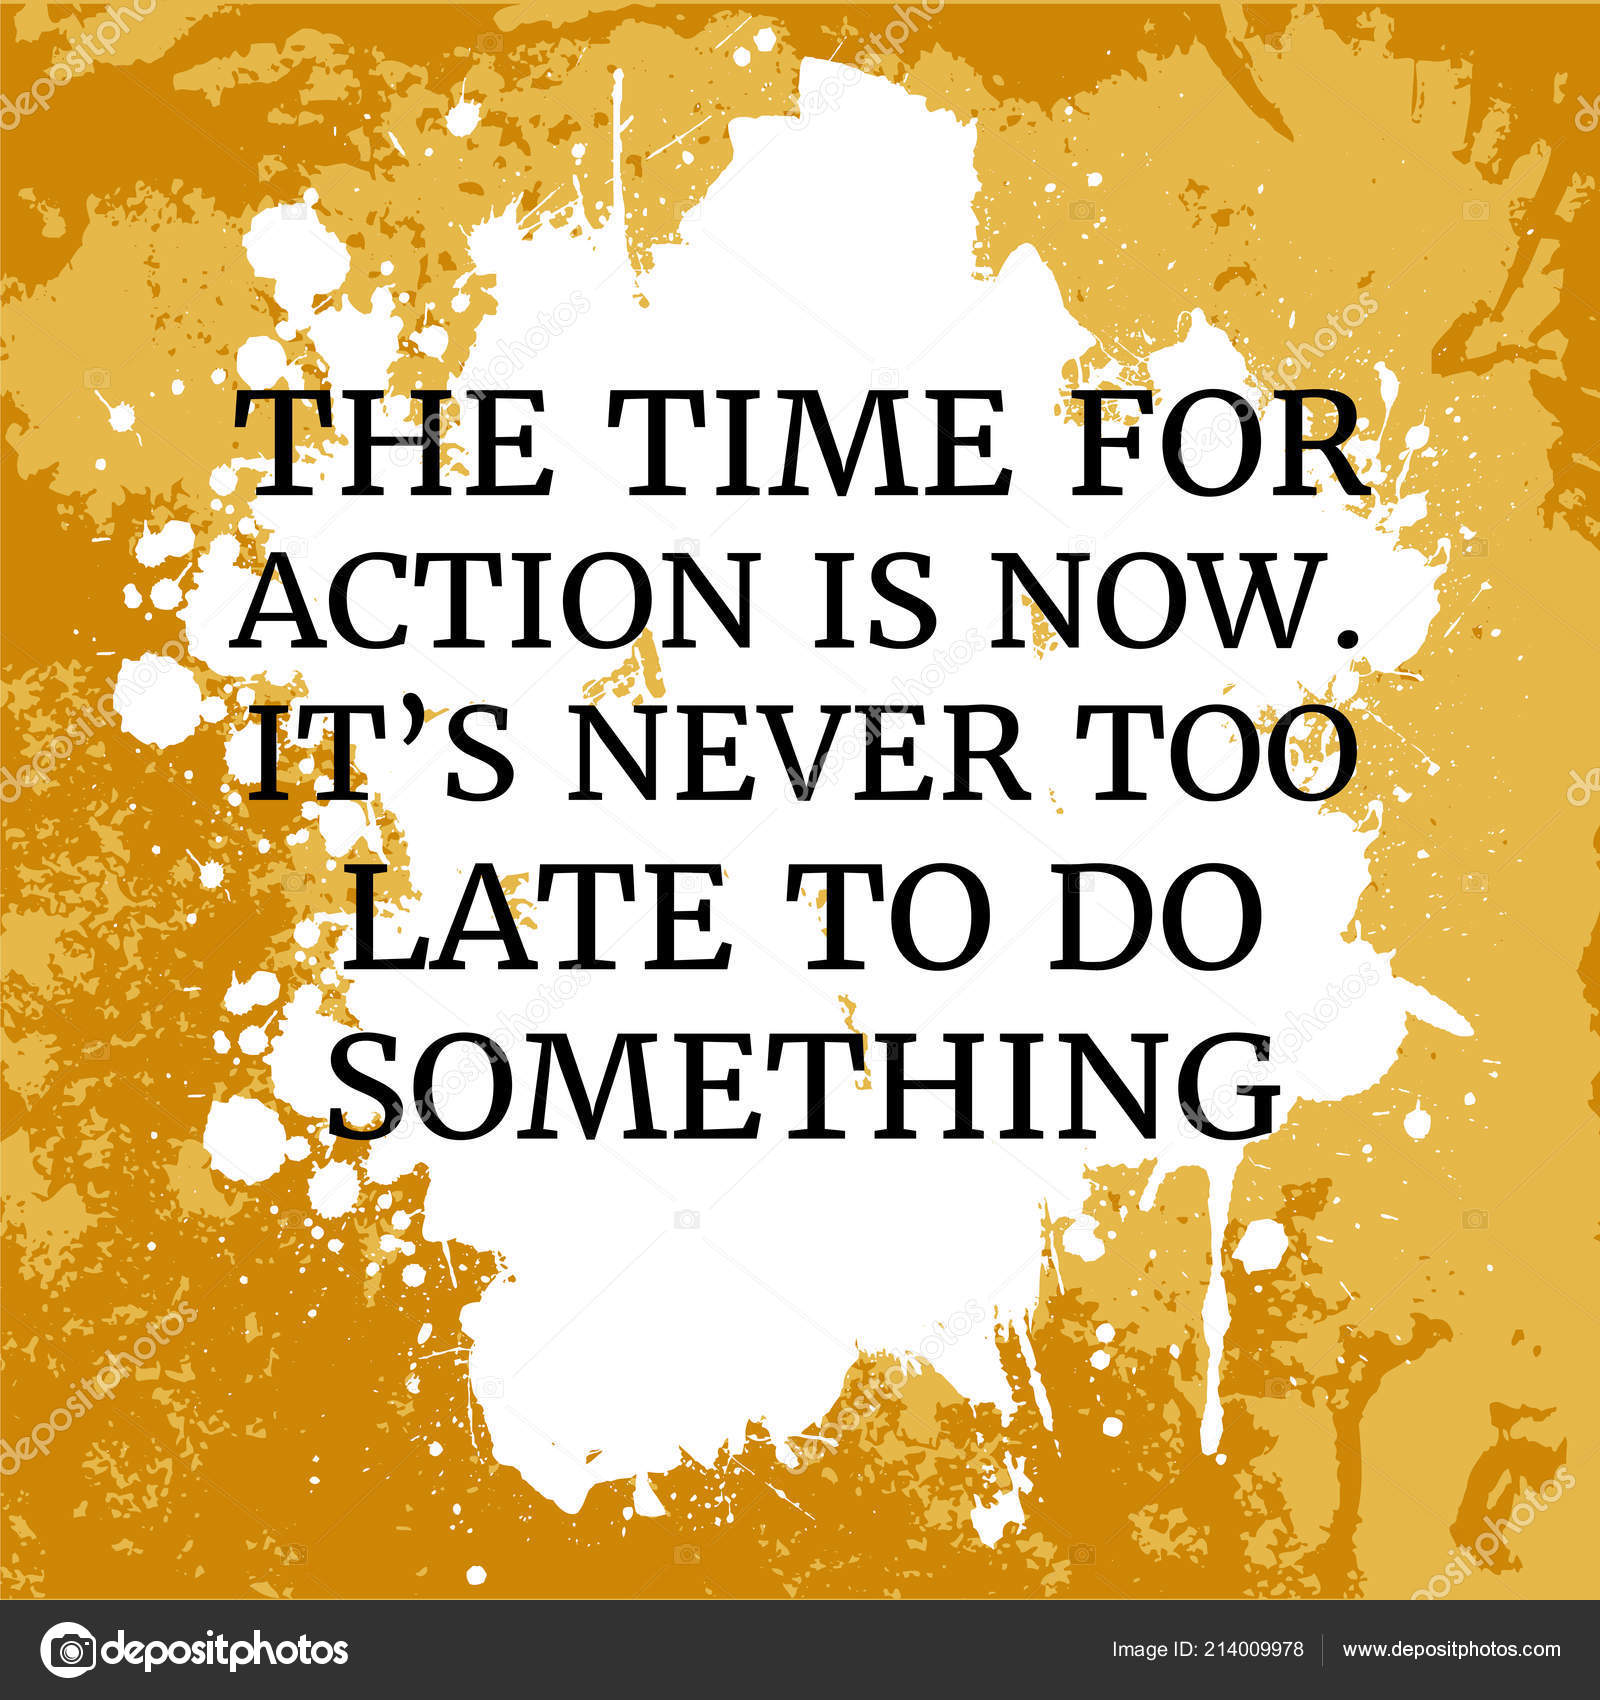 Motivational Quote Time Action Now Never Too Late Something Orange